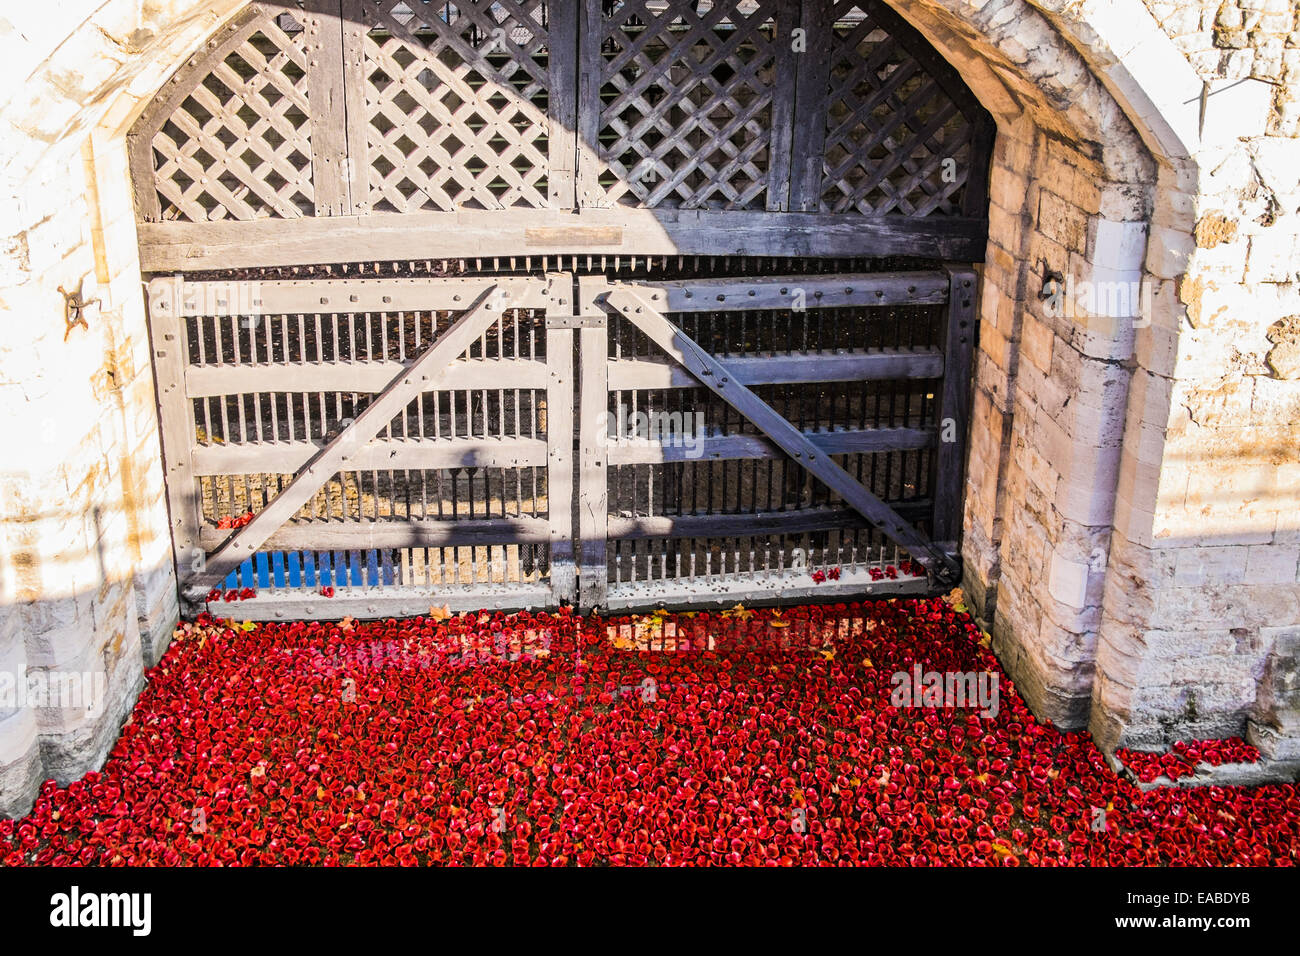 Blood Swept Lands & Seas of Red at the Tower of London - Stock Image